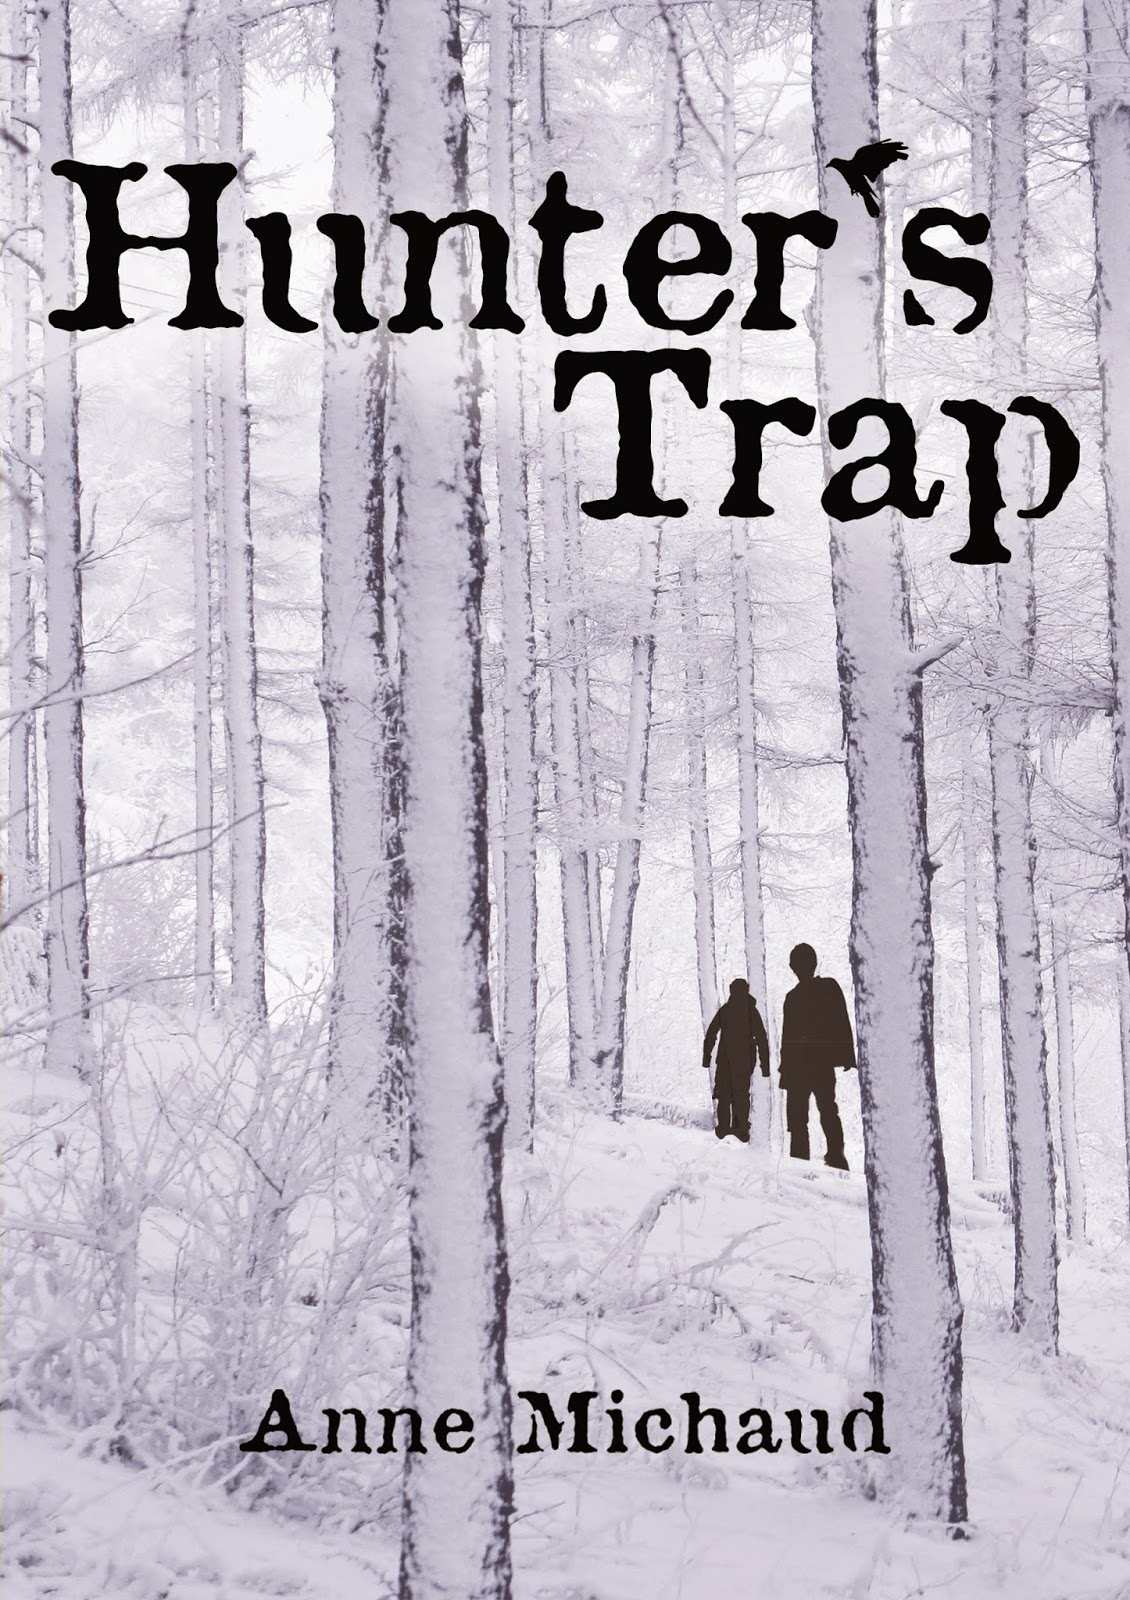 https://www.goodreads.com/book/show/22674236-hunter-s-trap